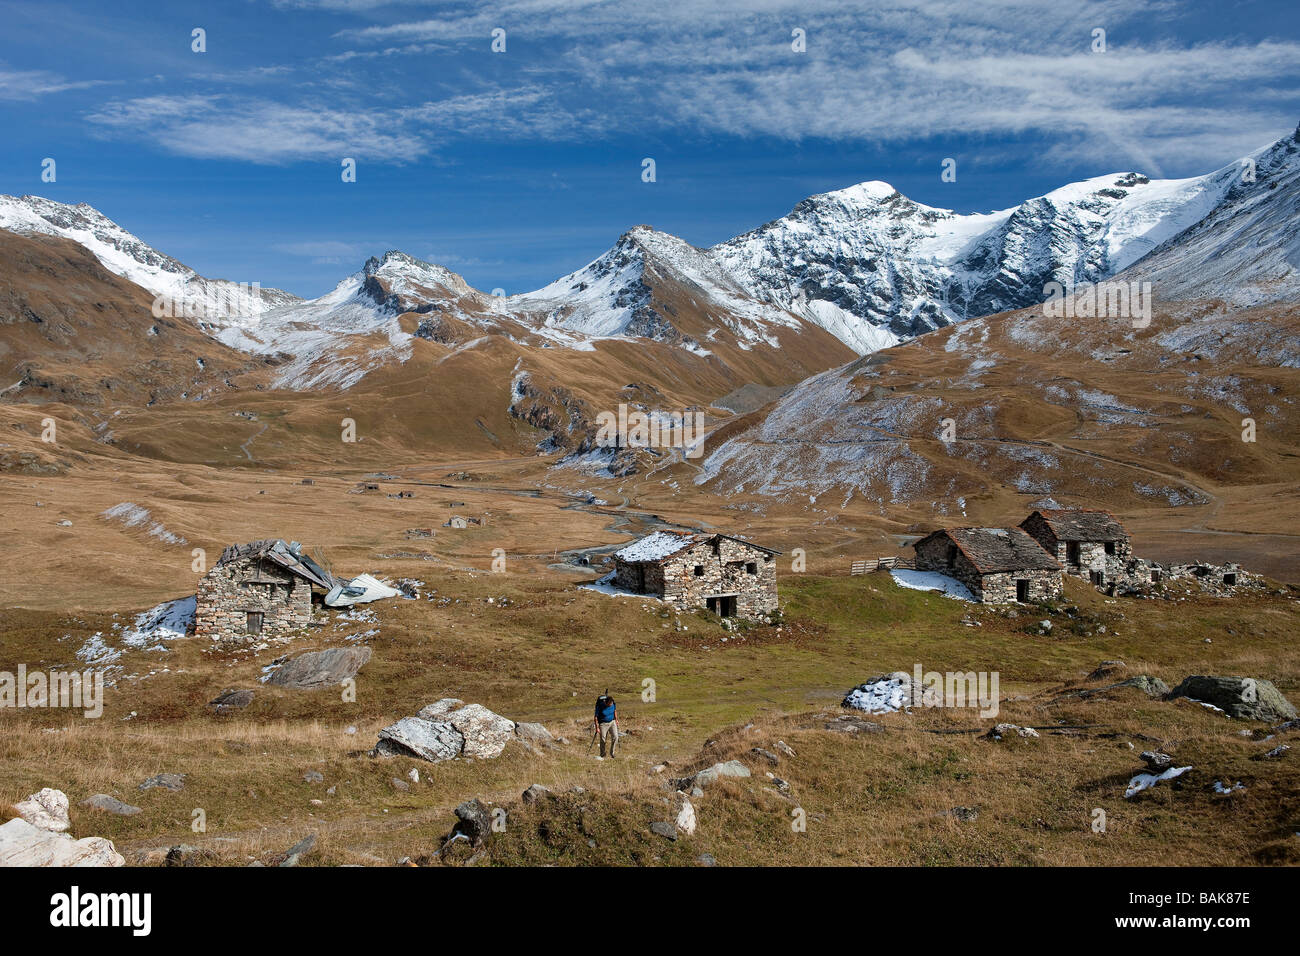 France, Savoie, Le Clou hamlet (2226m) and Le Plan (2208m), facing the Pointe des Mines and the upper side of Les - Stock Image